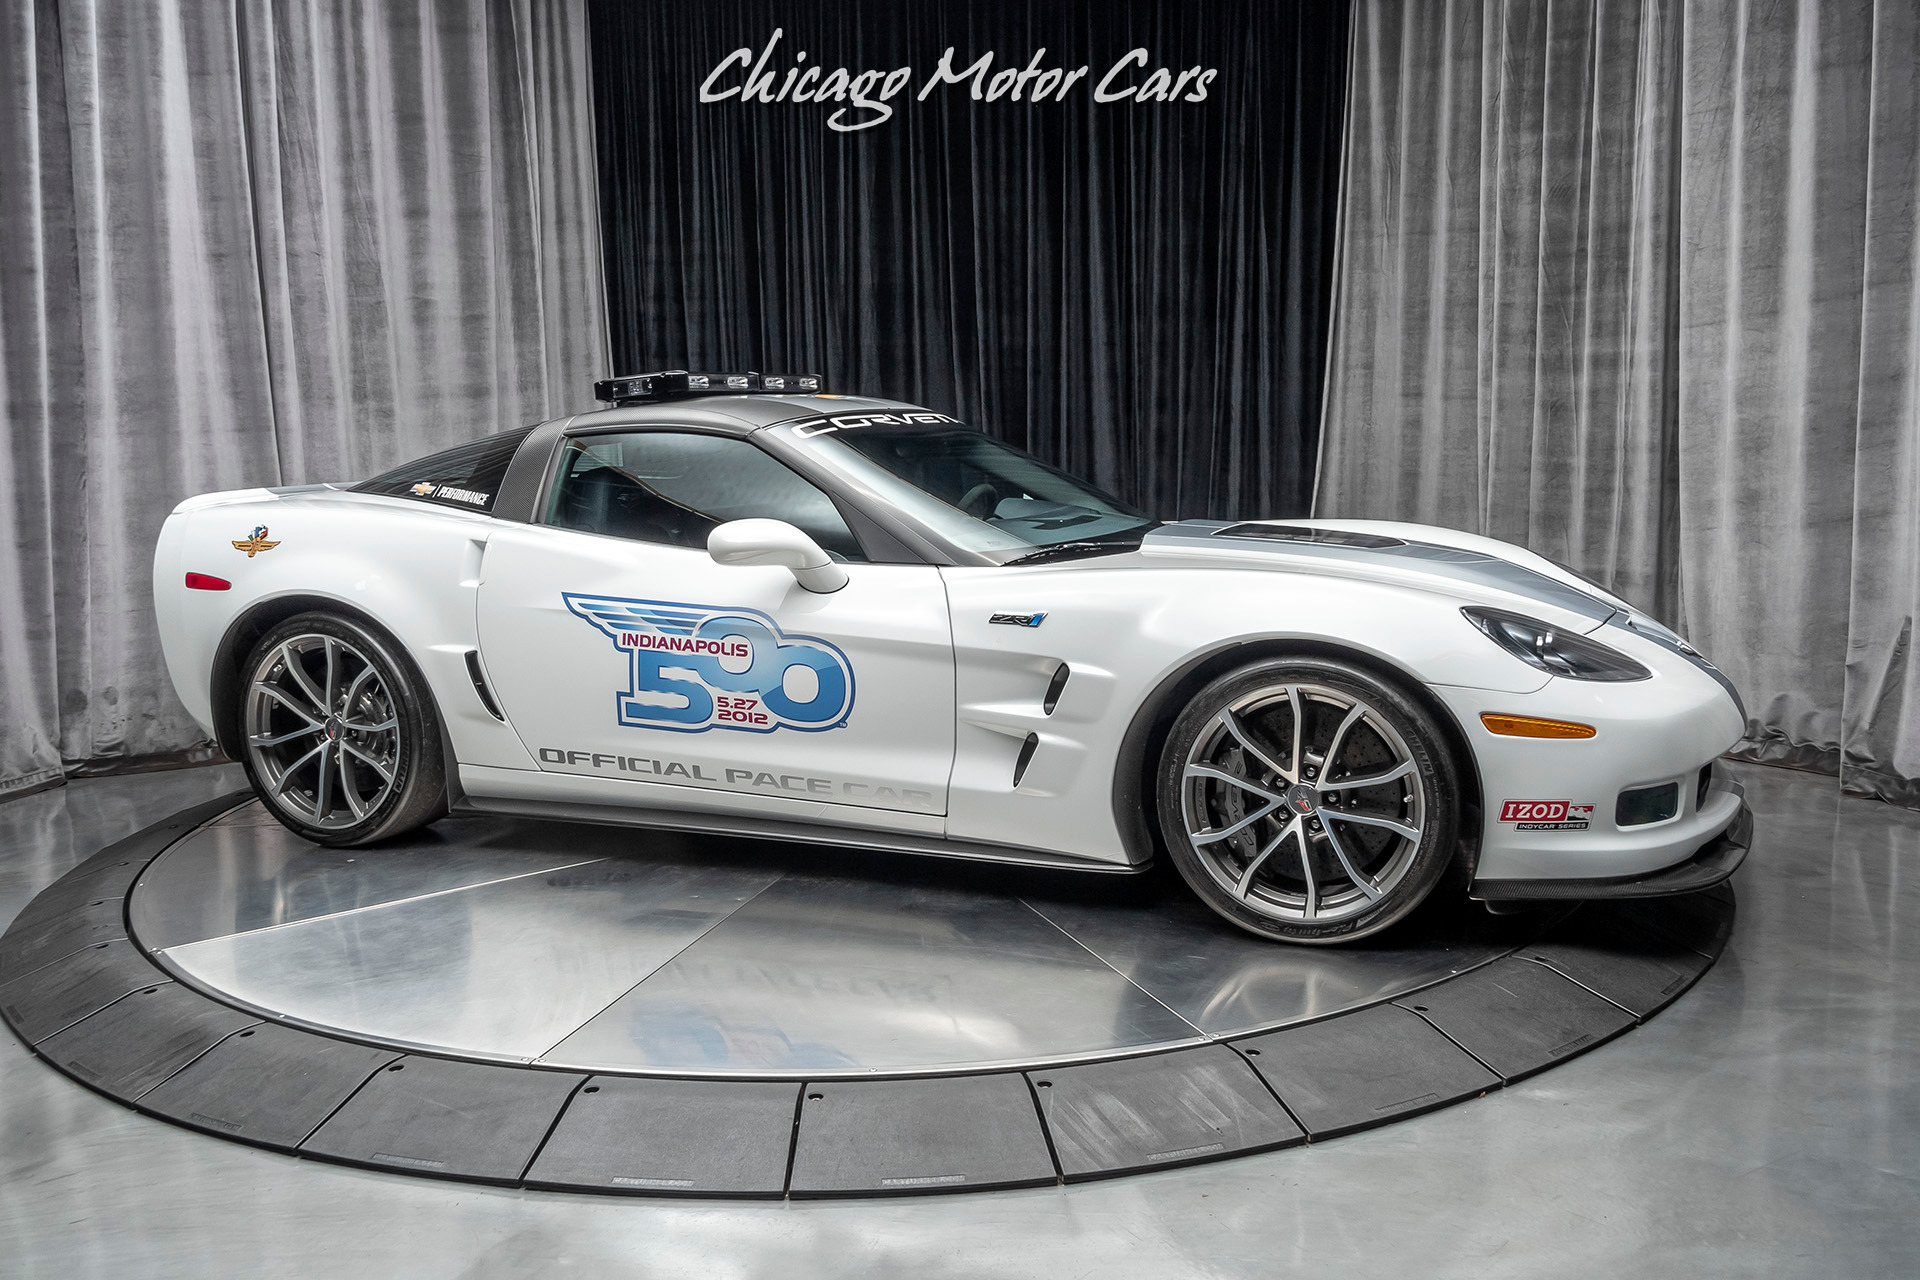 Used-2013-Chevrolet-Corvette-ZR1-3ZR-TRIBUTE-PACE-CAR-Only-1200-Miles